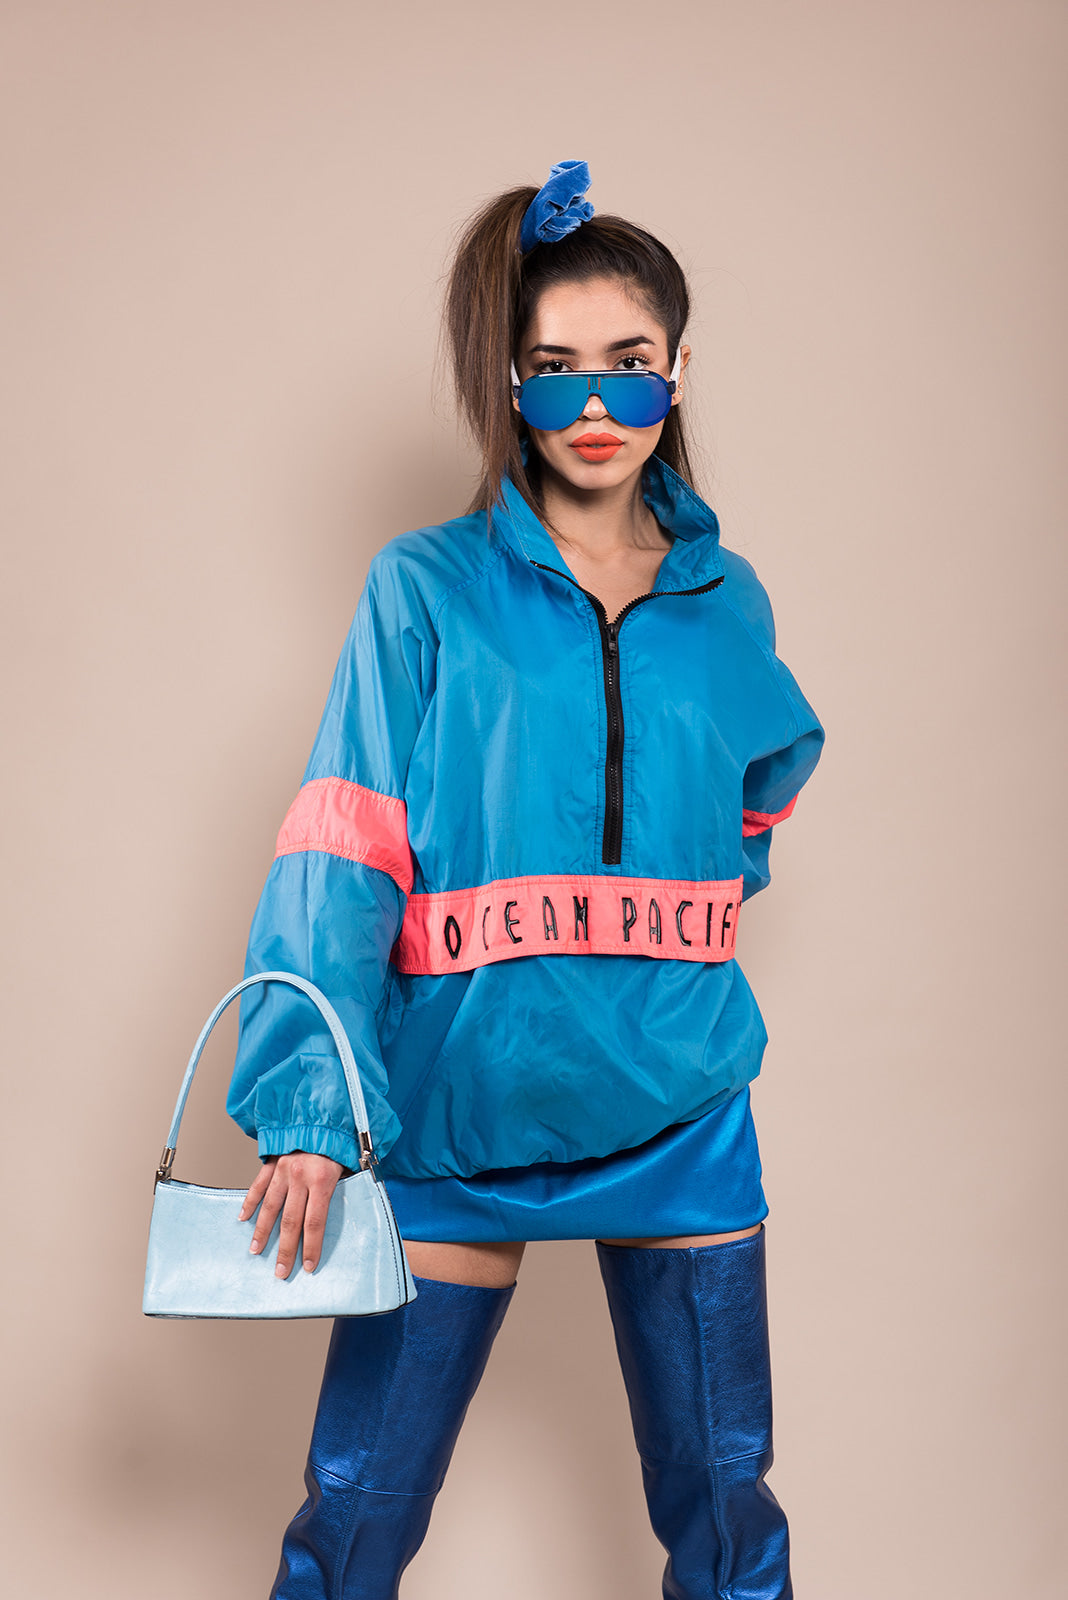 Ocean Pacific Windbreaker